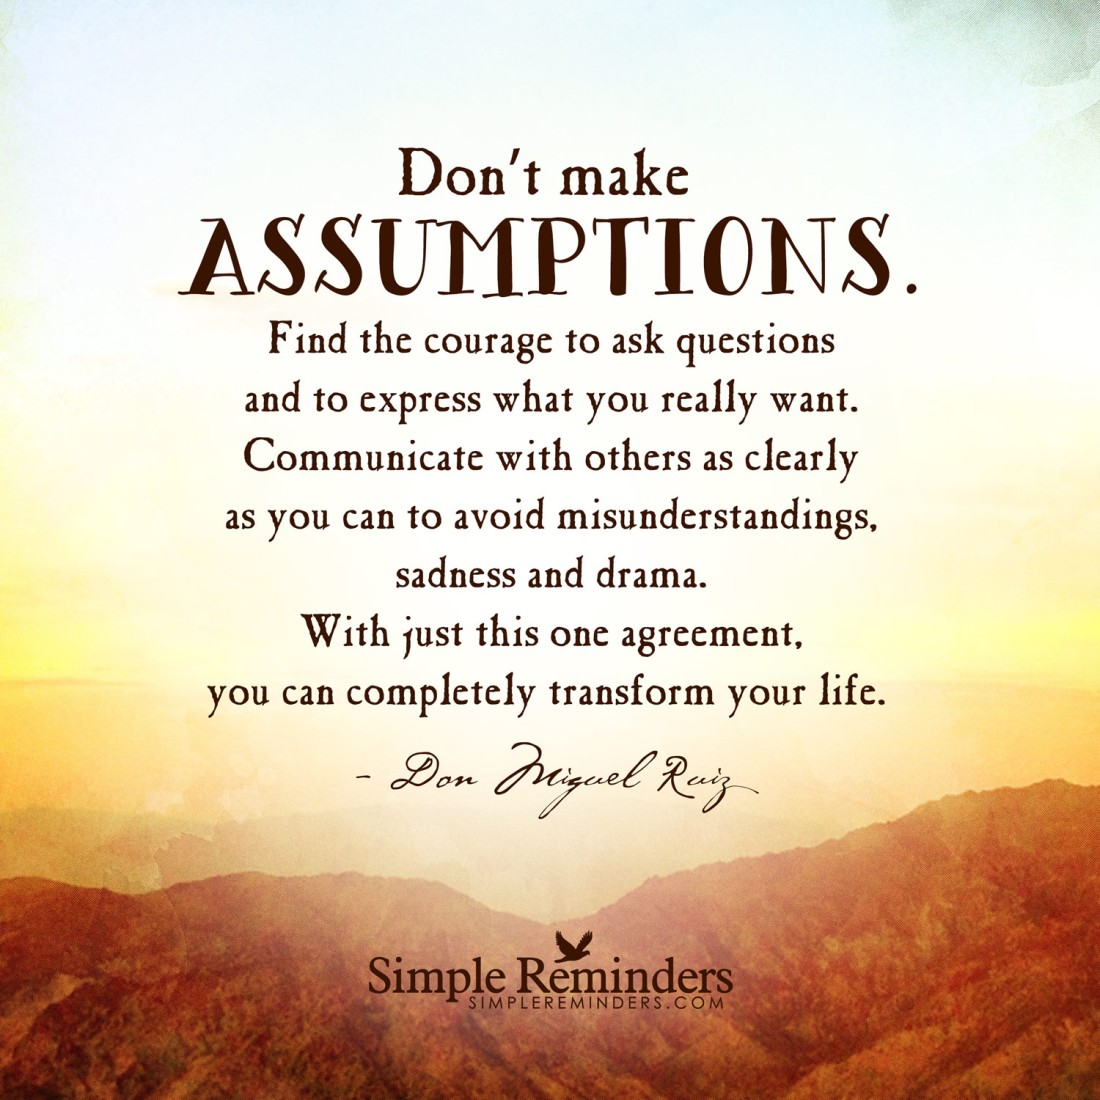 don-miguel-ruiz-dont-make-assumptions.jpg